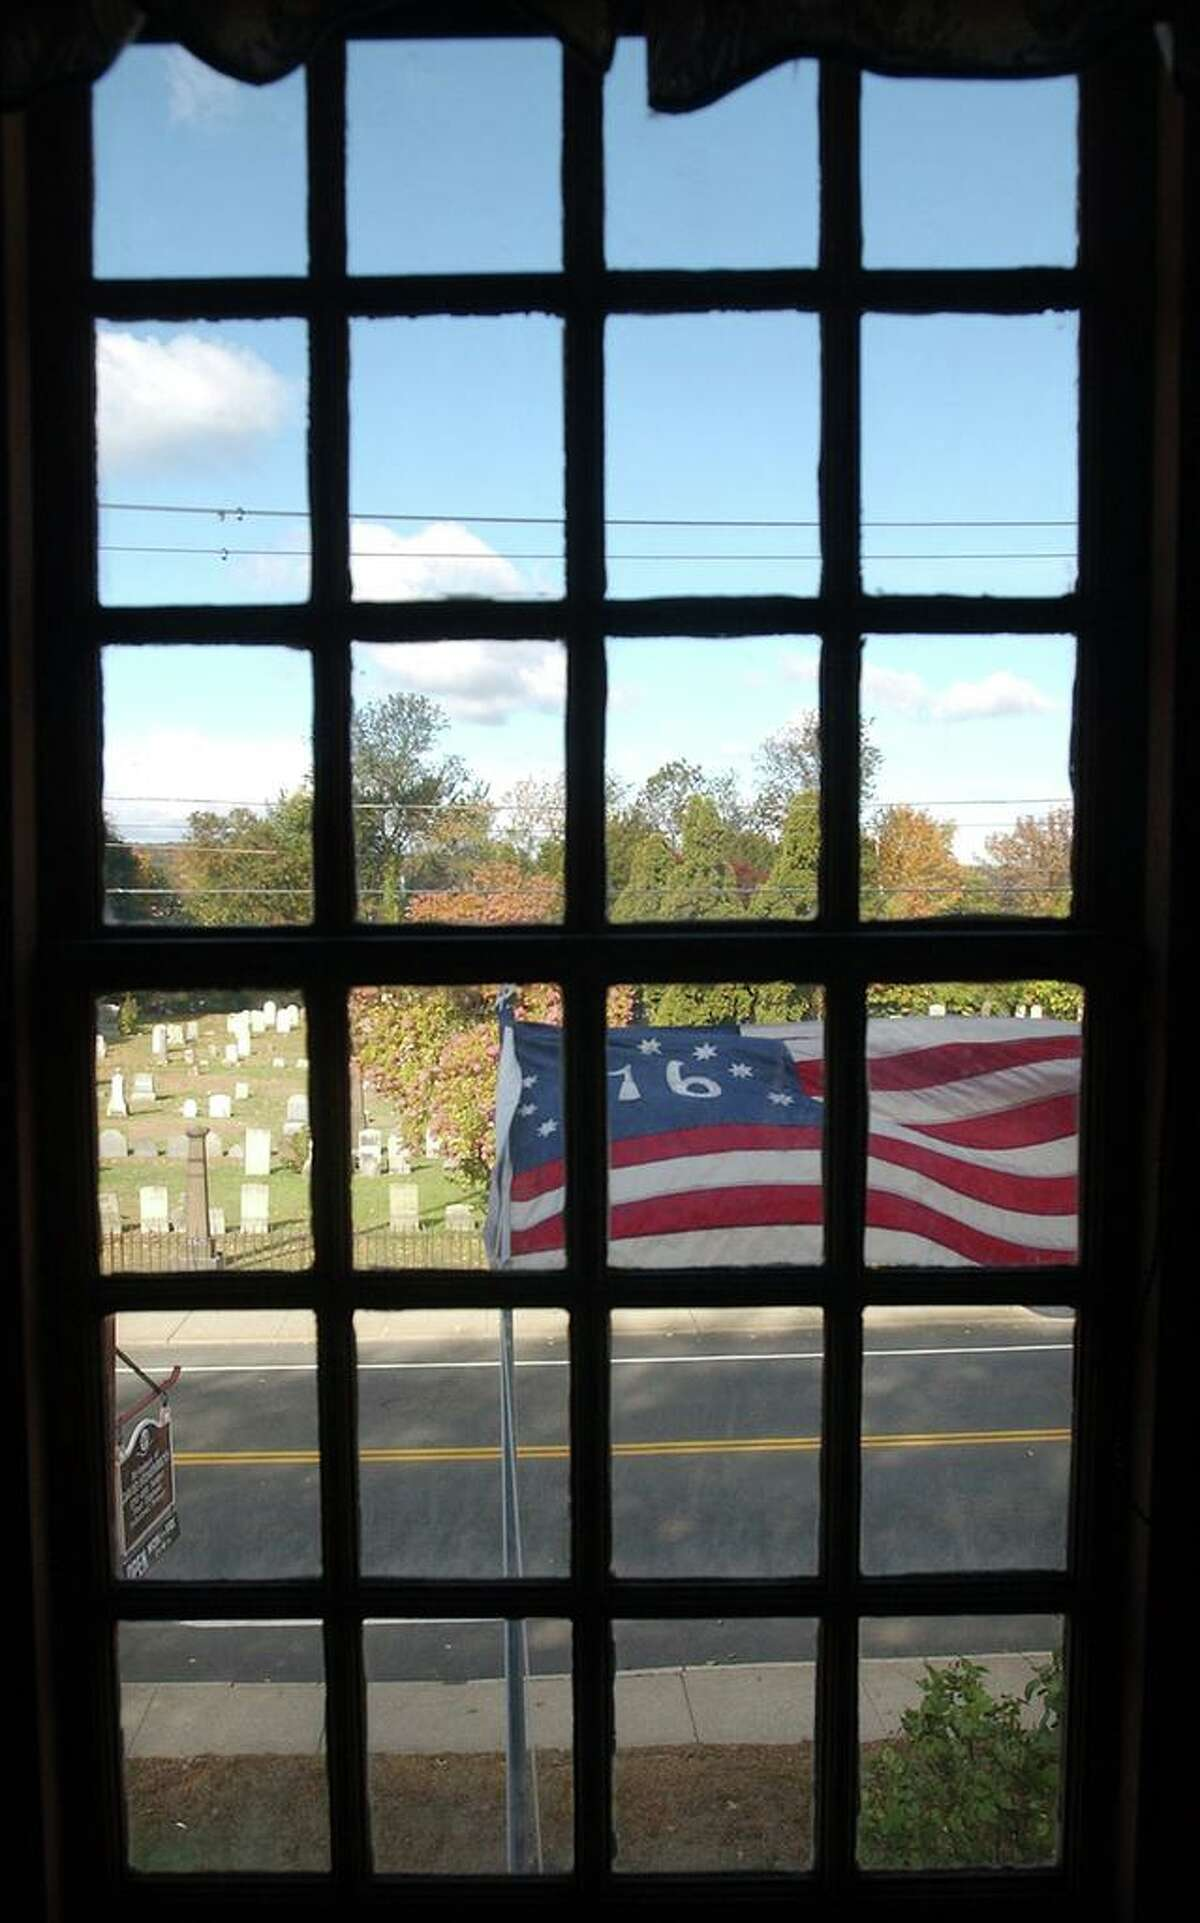 In this file photo, a view from the upstairs window of the Gen. David Humpreys House. The house, which is owned by and serves as headquarters for the Derby Historical Society, was listed on the National Register of Historic Places in 1972. It was restored to its mid-18th century appearance over the years, but officials say a new roof and other repairs are in order. According to Executive Director Daniel L. Bosques, repairs to the attic floor and other areas that were rotting had been made. But work to the rear and south sides of the two-story structure needs to be completed, and the house is also in need of a new roof. Because of the coronavirus pandemic, Bosques said